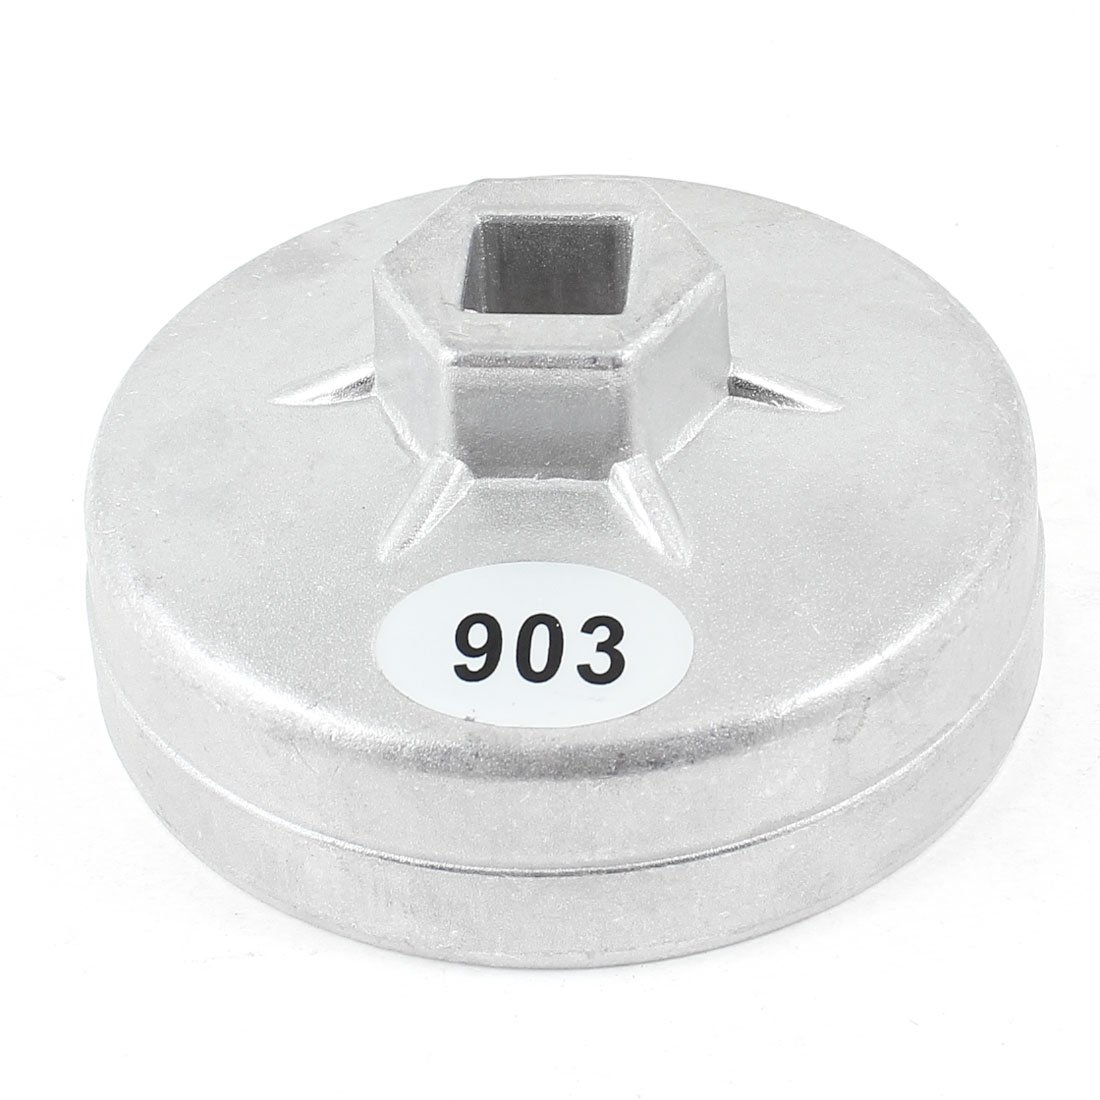 uxcell Car 74mm Inner Dia 14 Flutes Metal Oil Filter Cap Cup Wrench